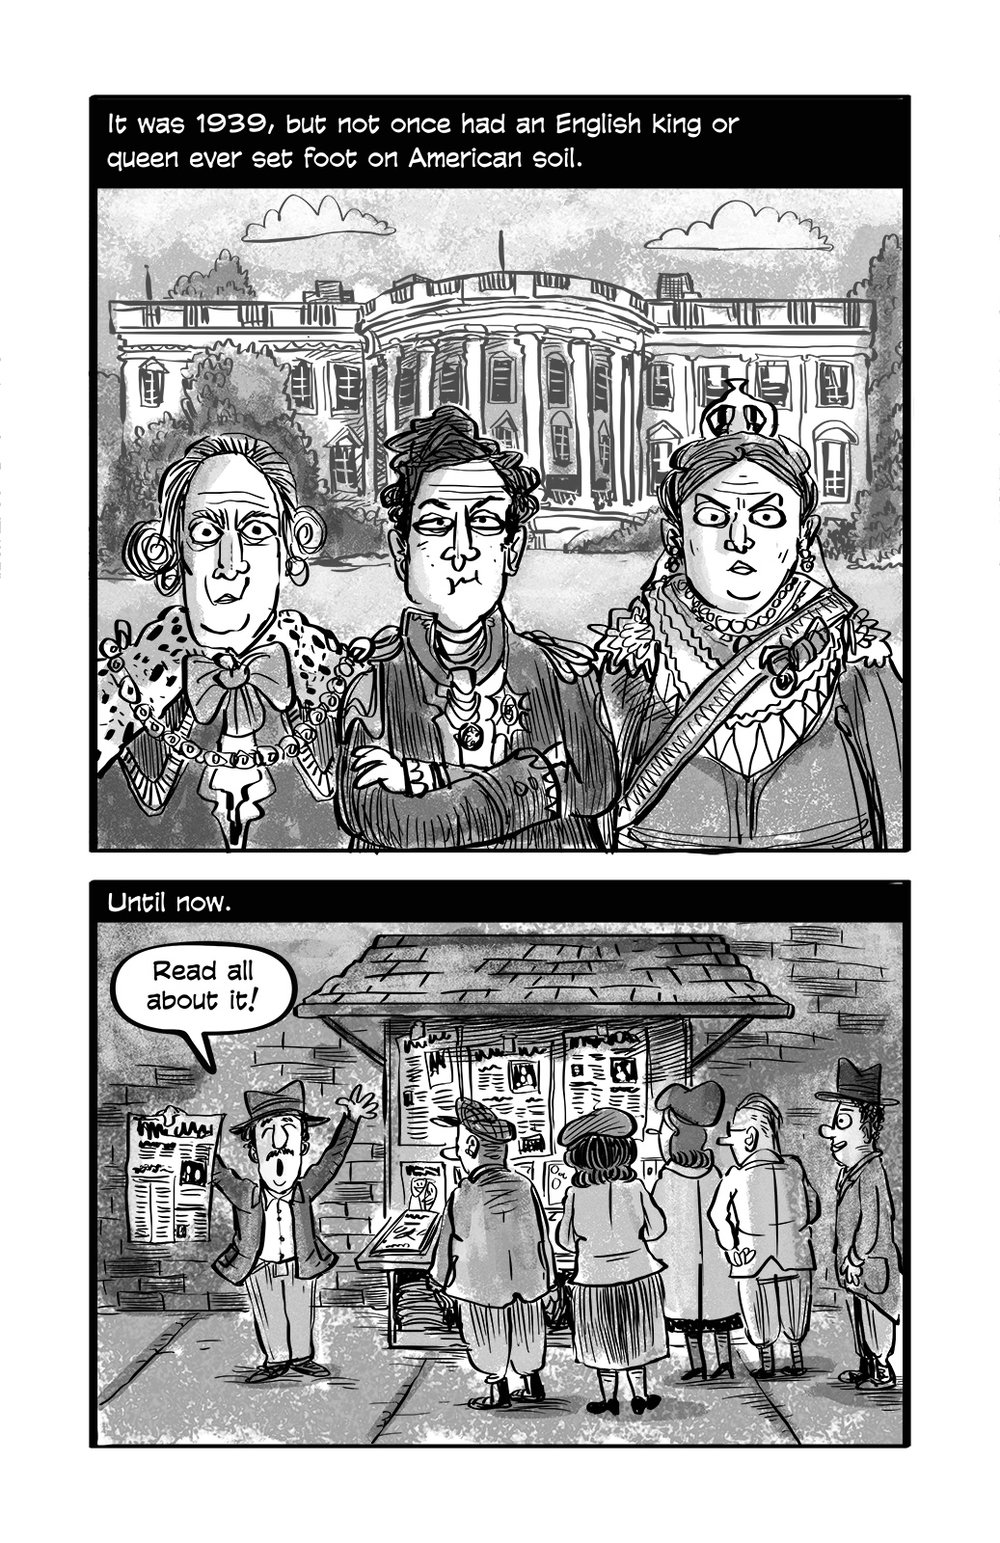 It also features 4 graphic novel style stories based on actual events in Eleanor Roosevelt's life.